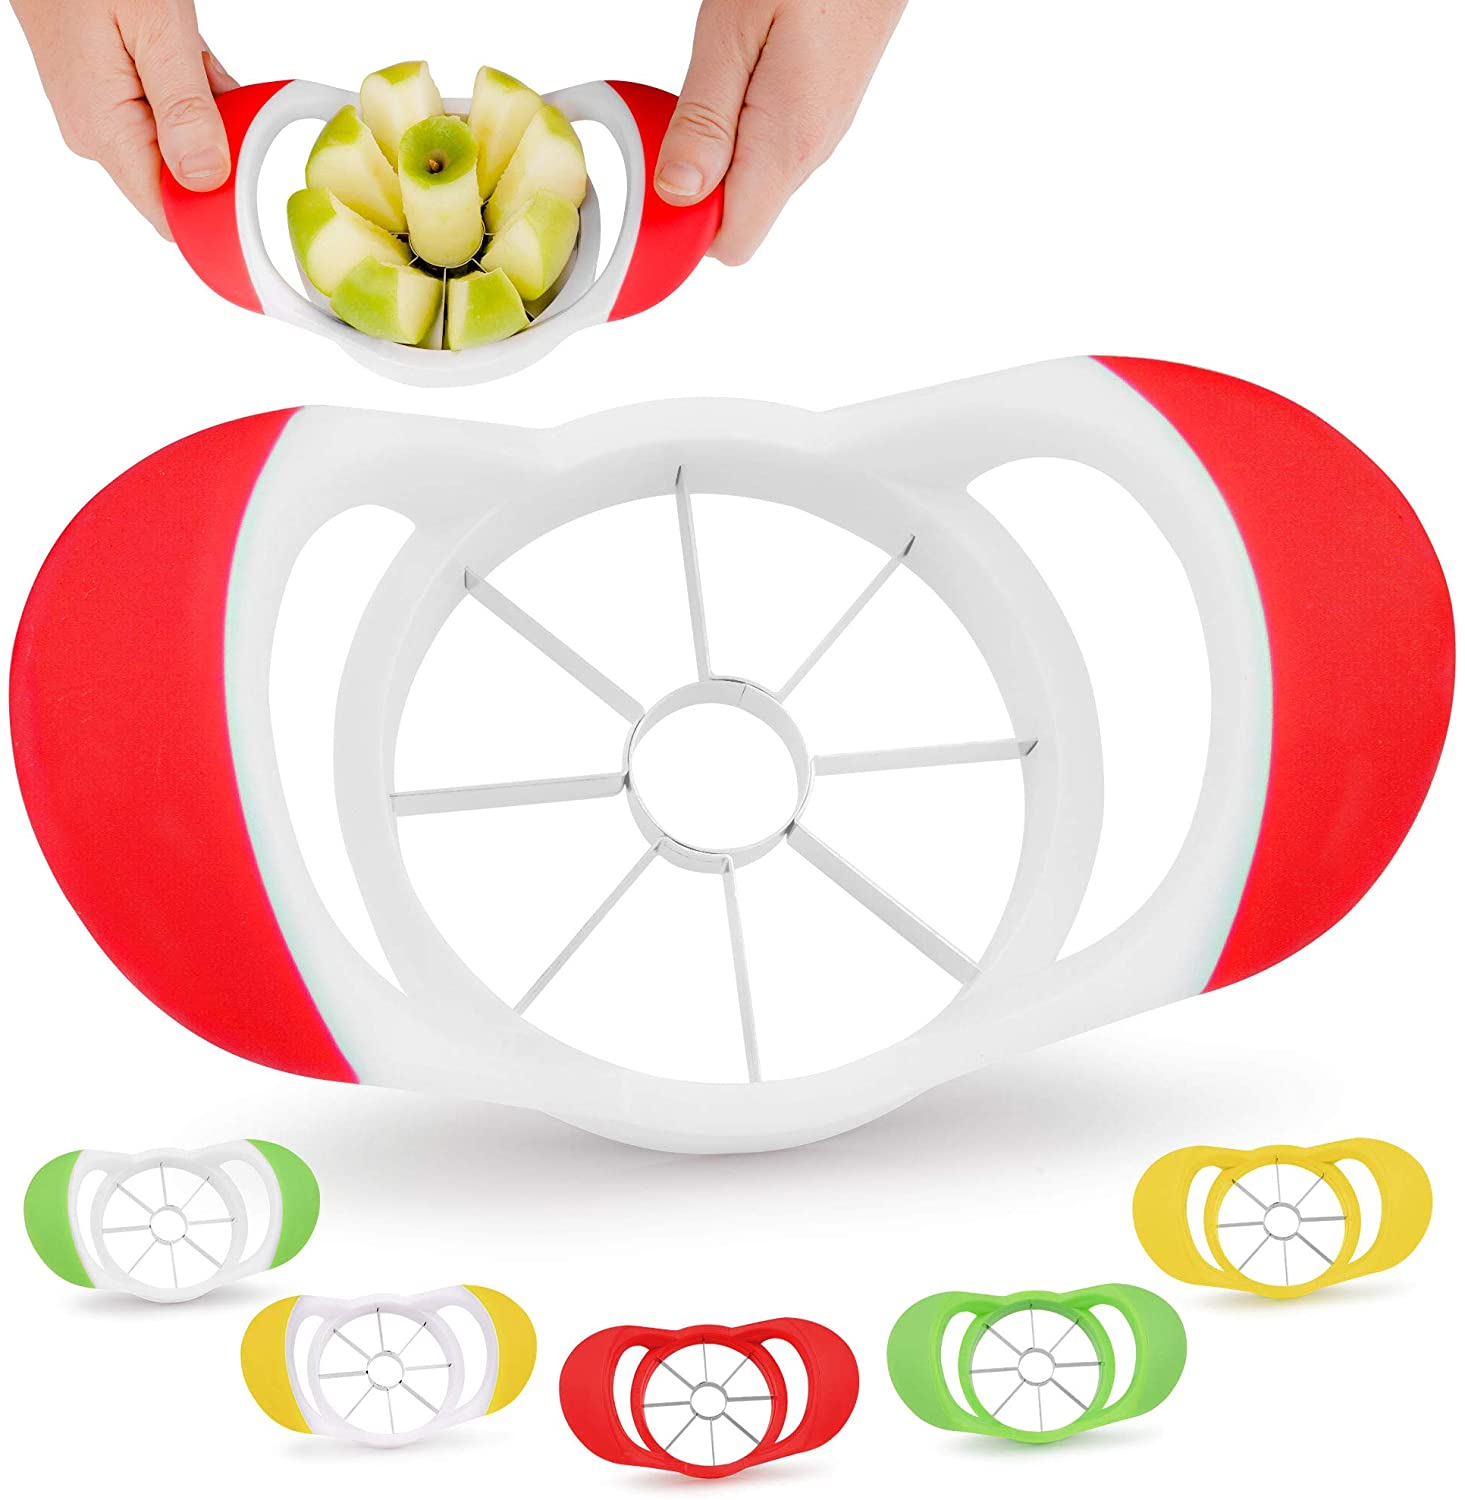 Zulay 8 Blade Apple Slicer - Easy Grip Apple Cutter With Stainless Steel Blades - Fast Usage Appl...